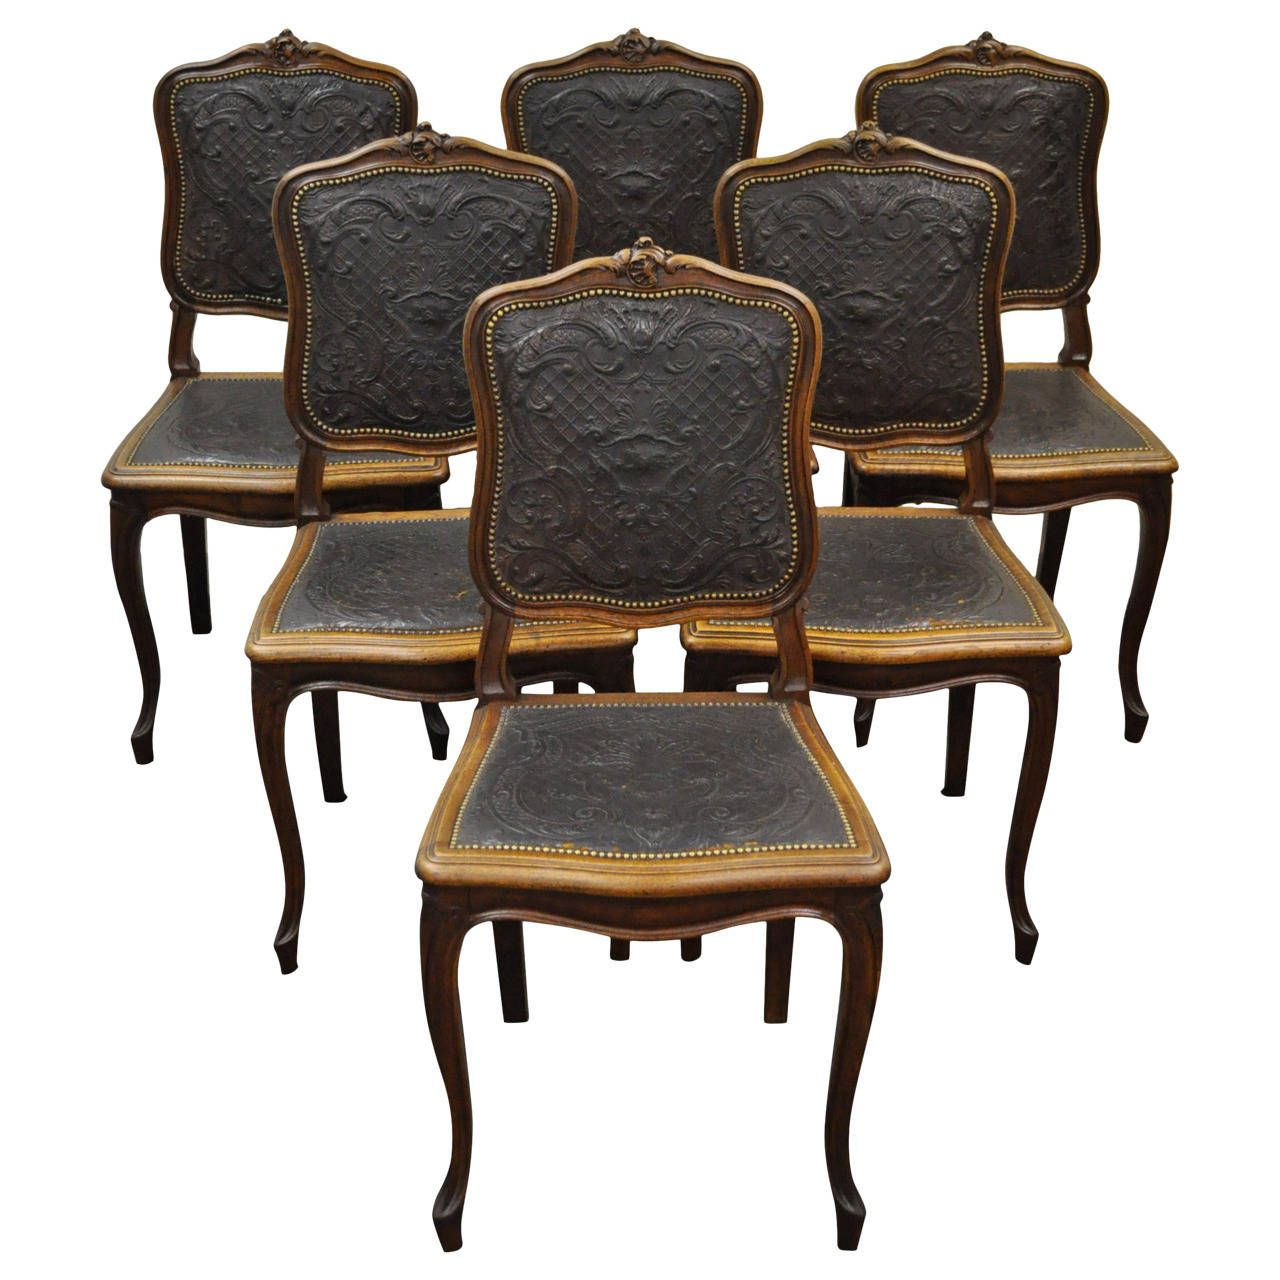 Modern french dining chair - Set Of Six French Louis Xv Style Walnut Dining Chairs With Embossed Leather